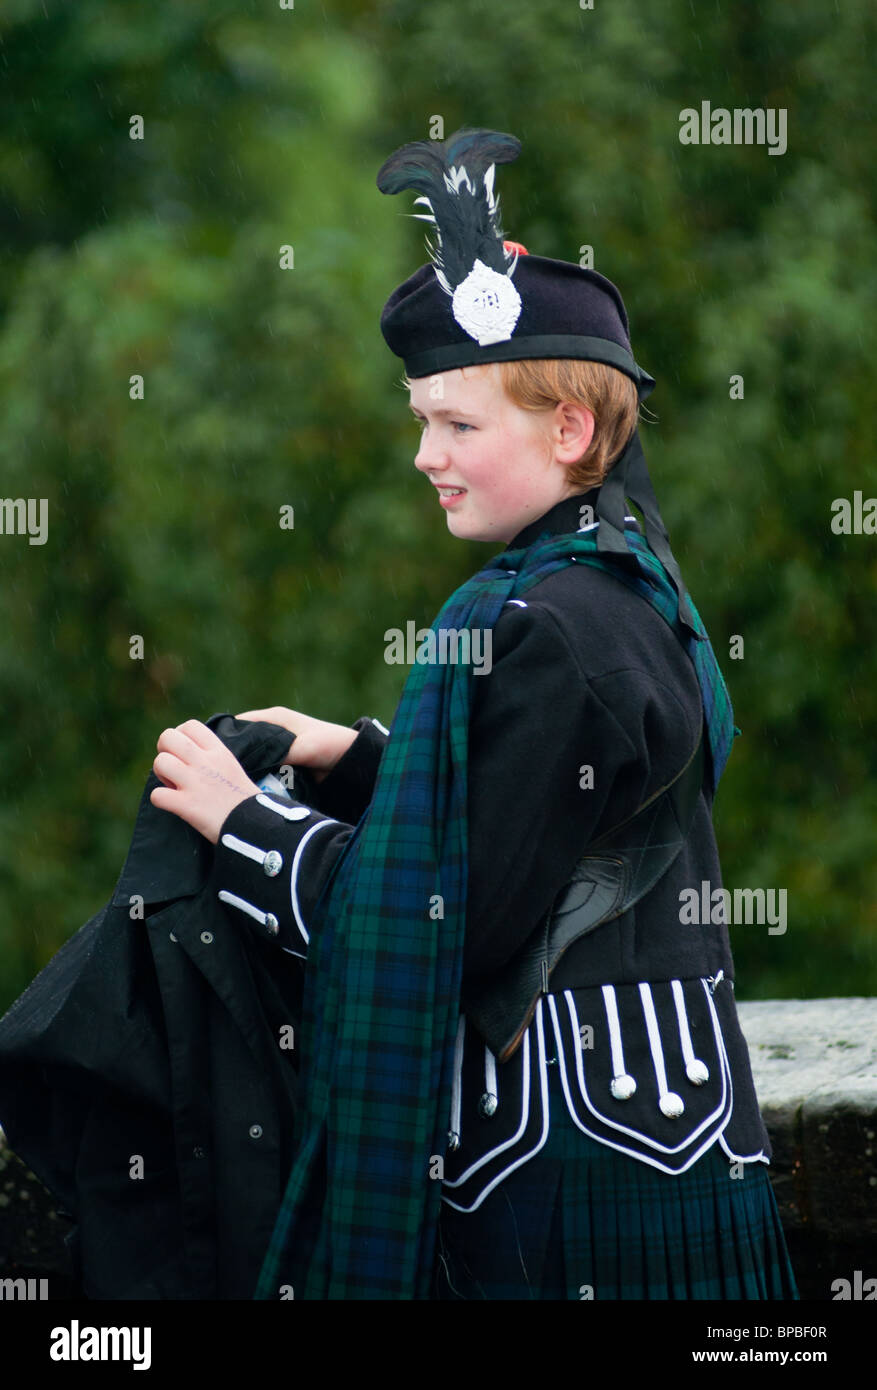 Scots girl with red hair and fair skin in traditional Scottish clothes. - Stock Image